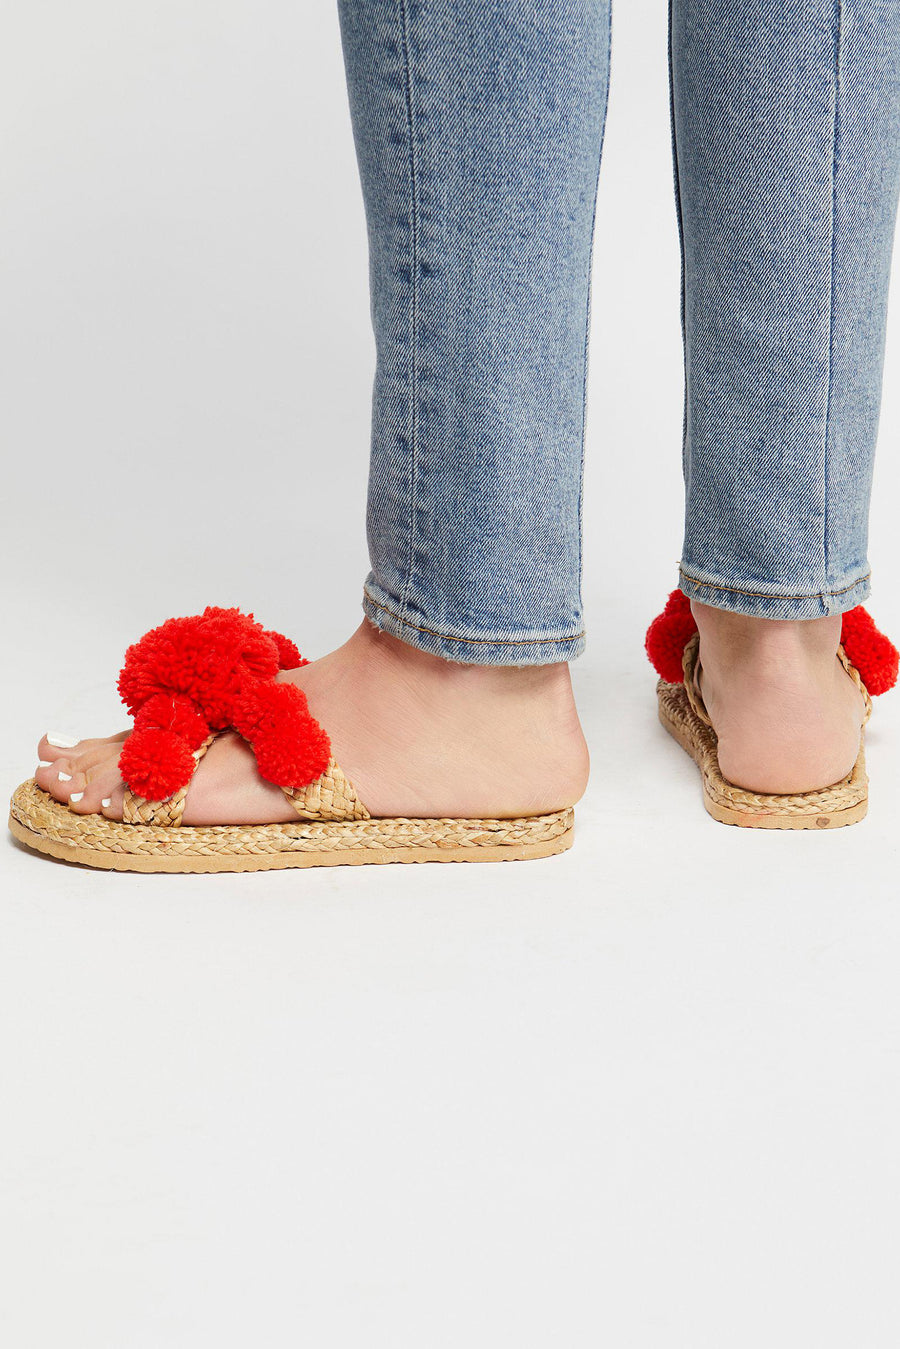 Pom Pom Aruba Perfect Summer Sandal